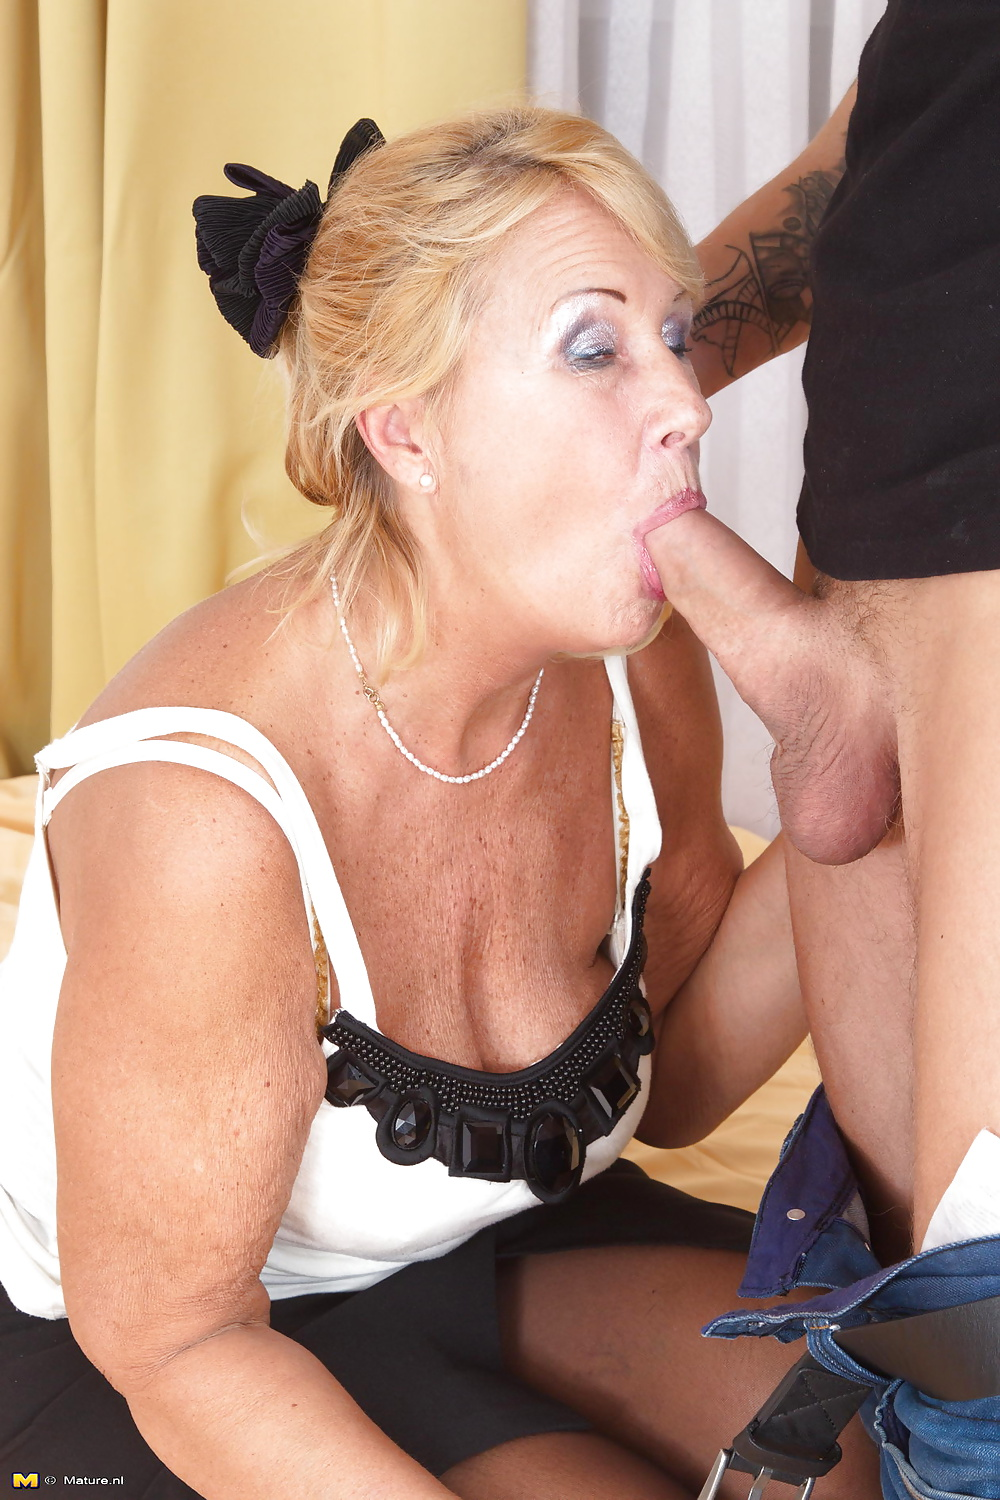 gramma-blowjob-forgot-password-russia-singles-russian